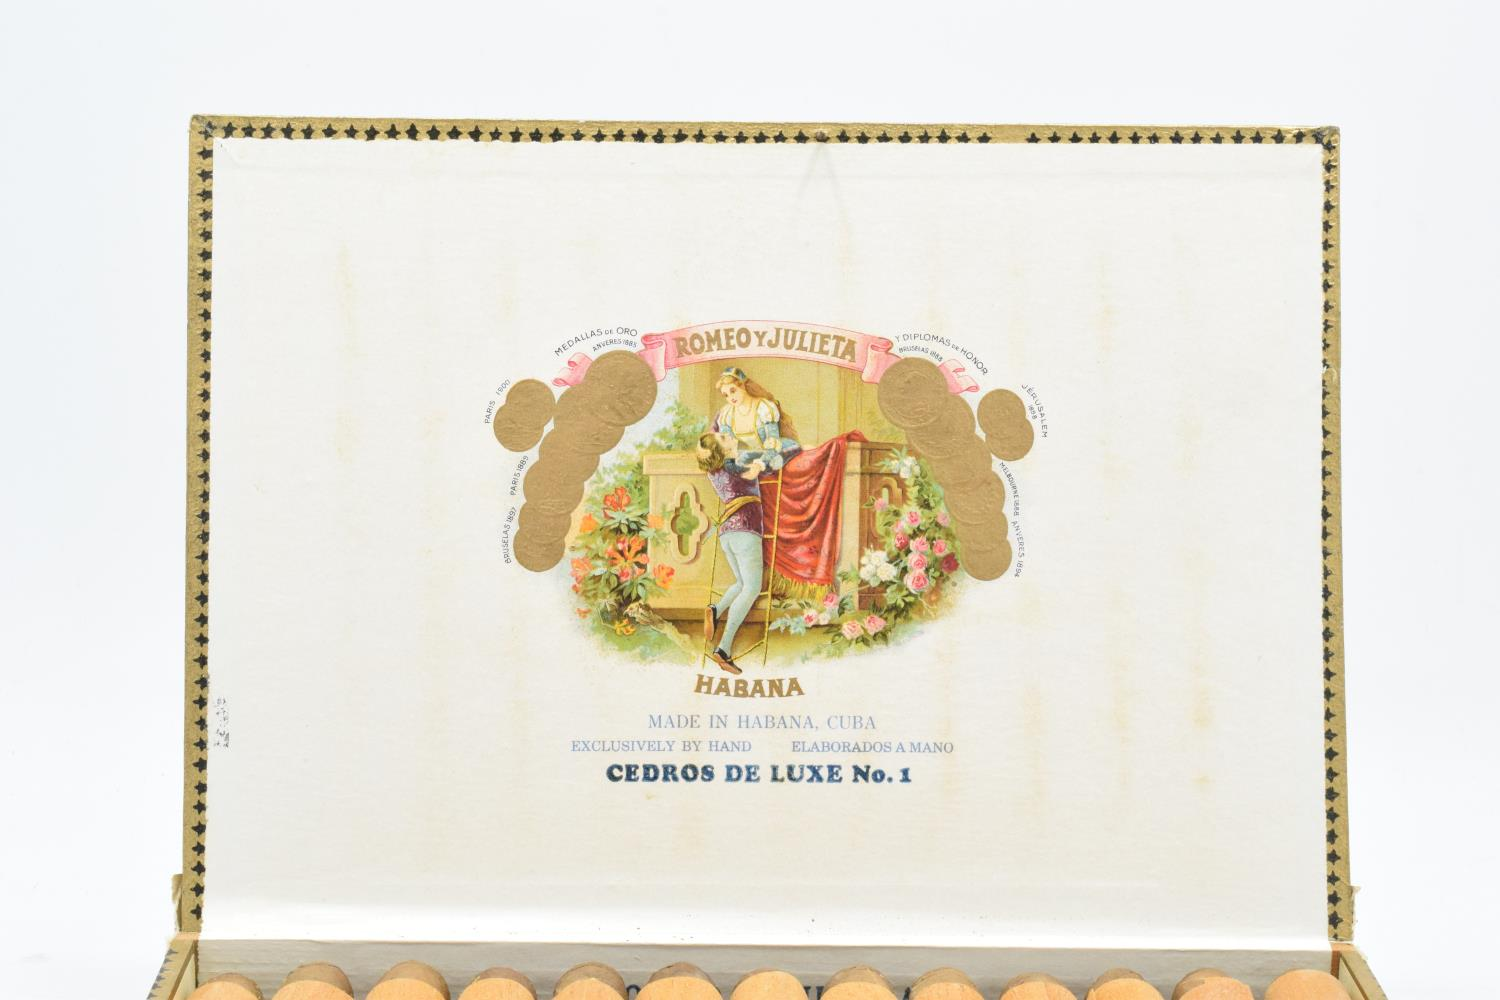 A cased set of 25 Romeo y Julieta Cedros De Luxe No.1 cigars made in Habana, Cuba. Appear to be in - Image 3 of 11